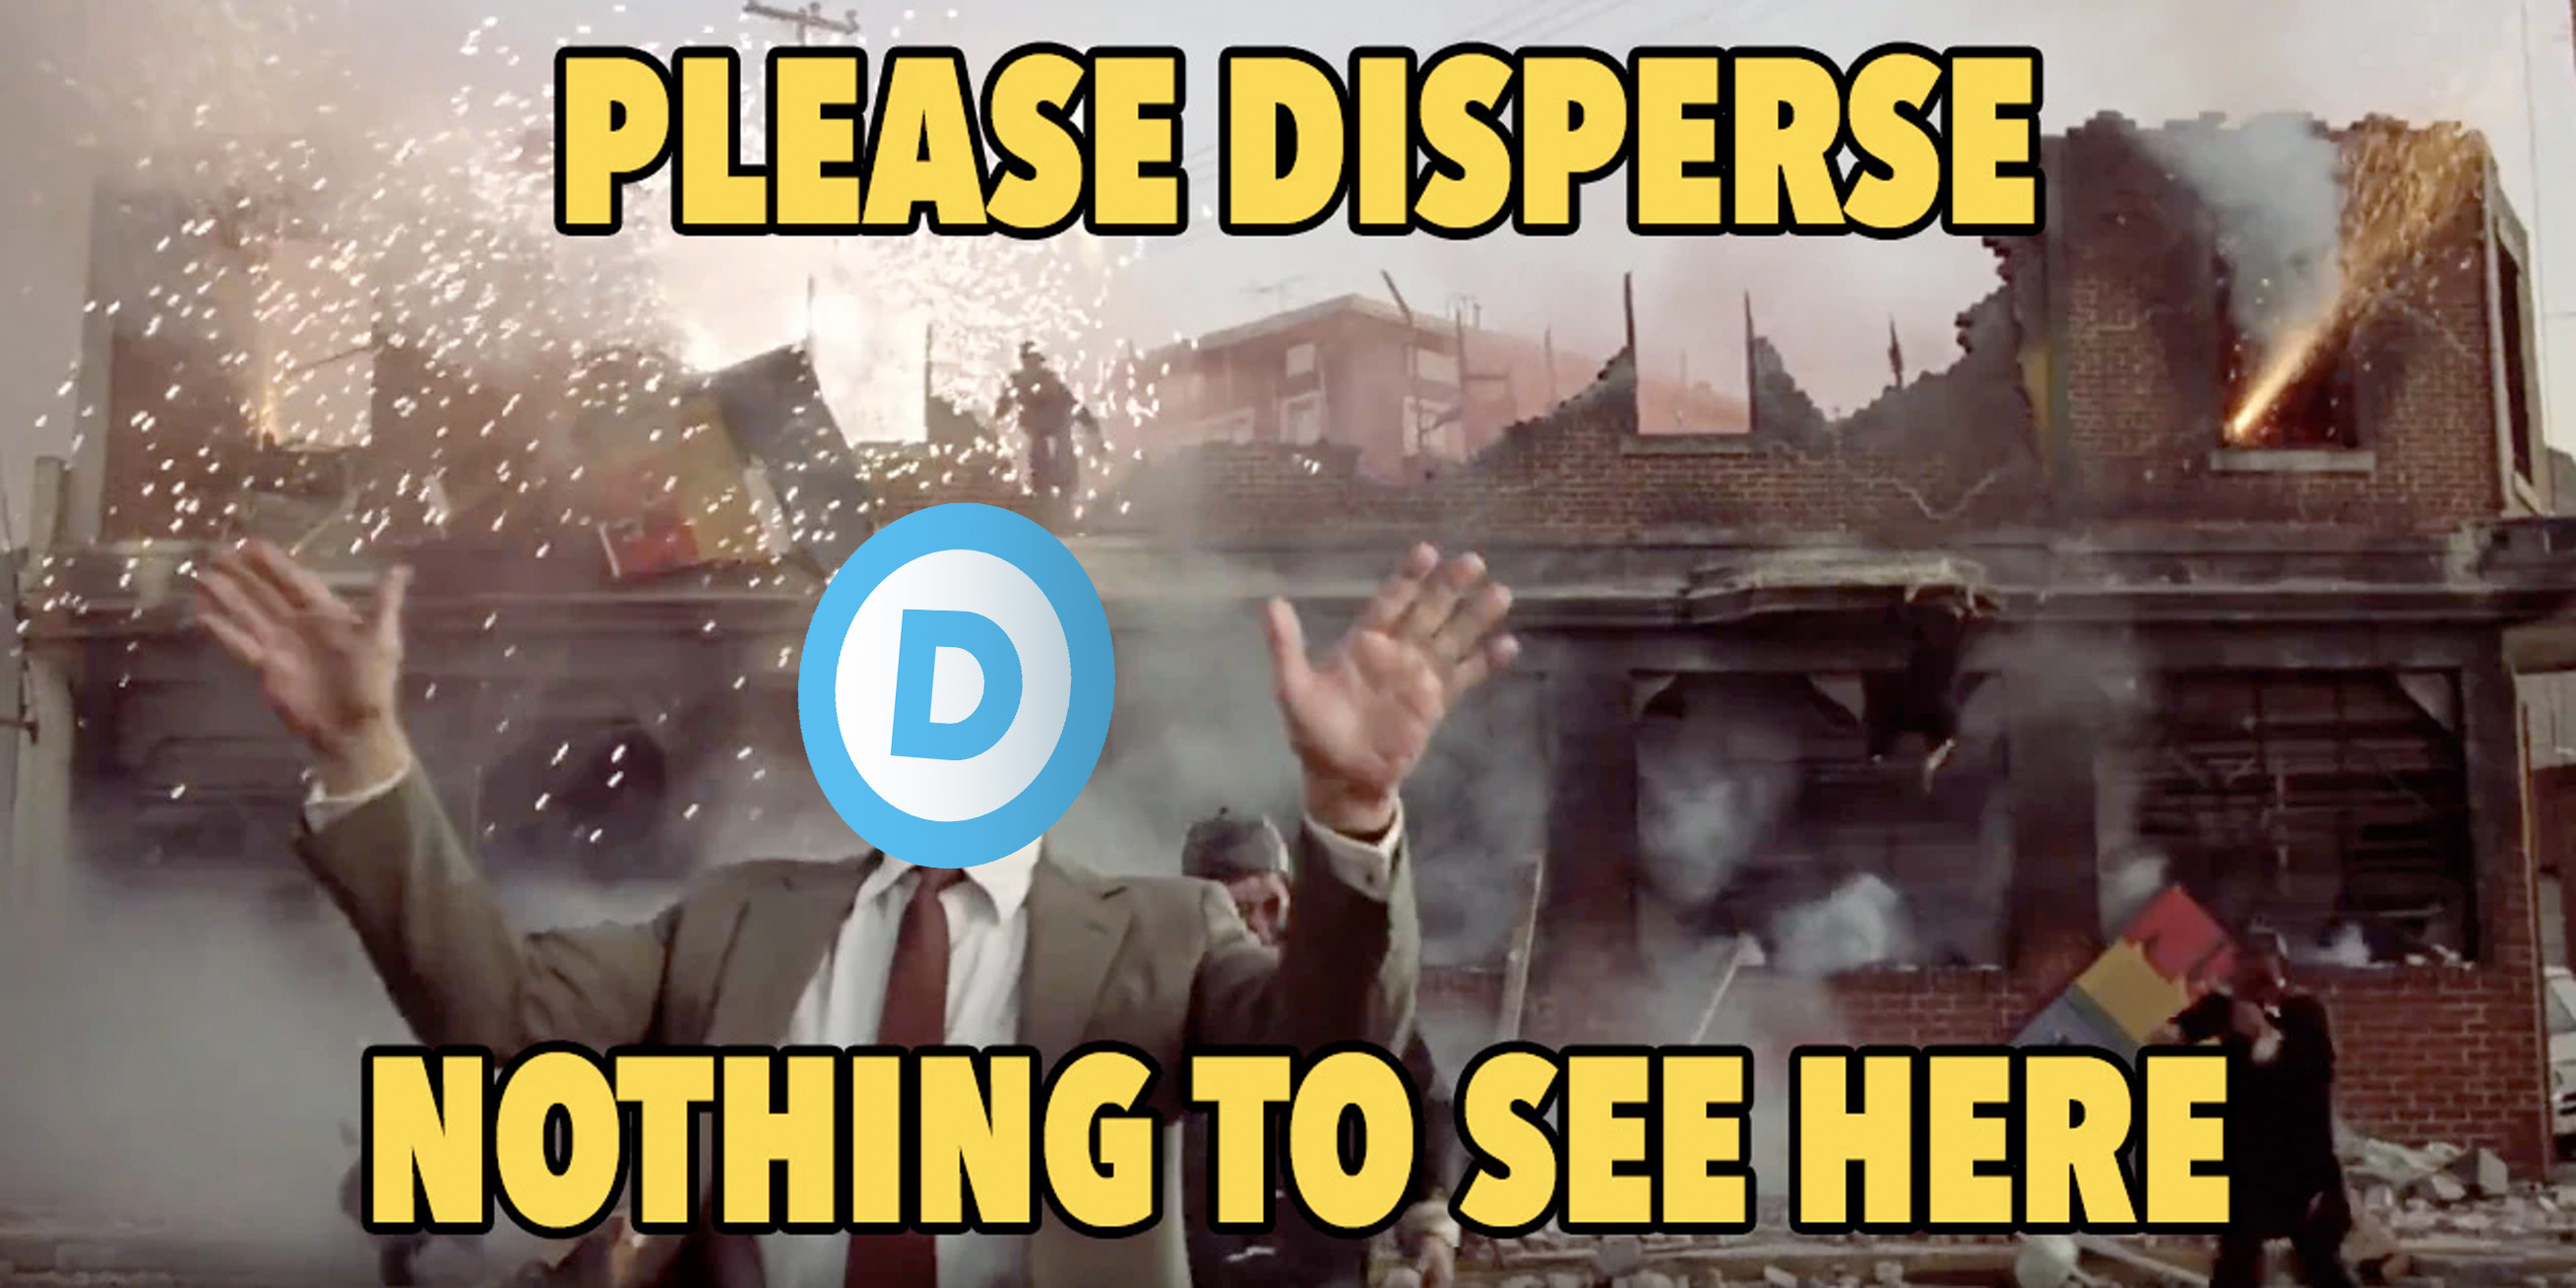 Democrat nothing to see here